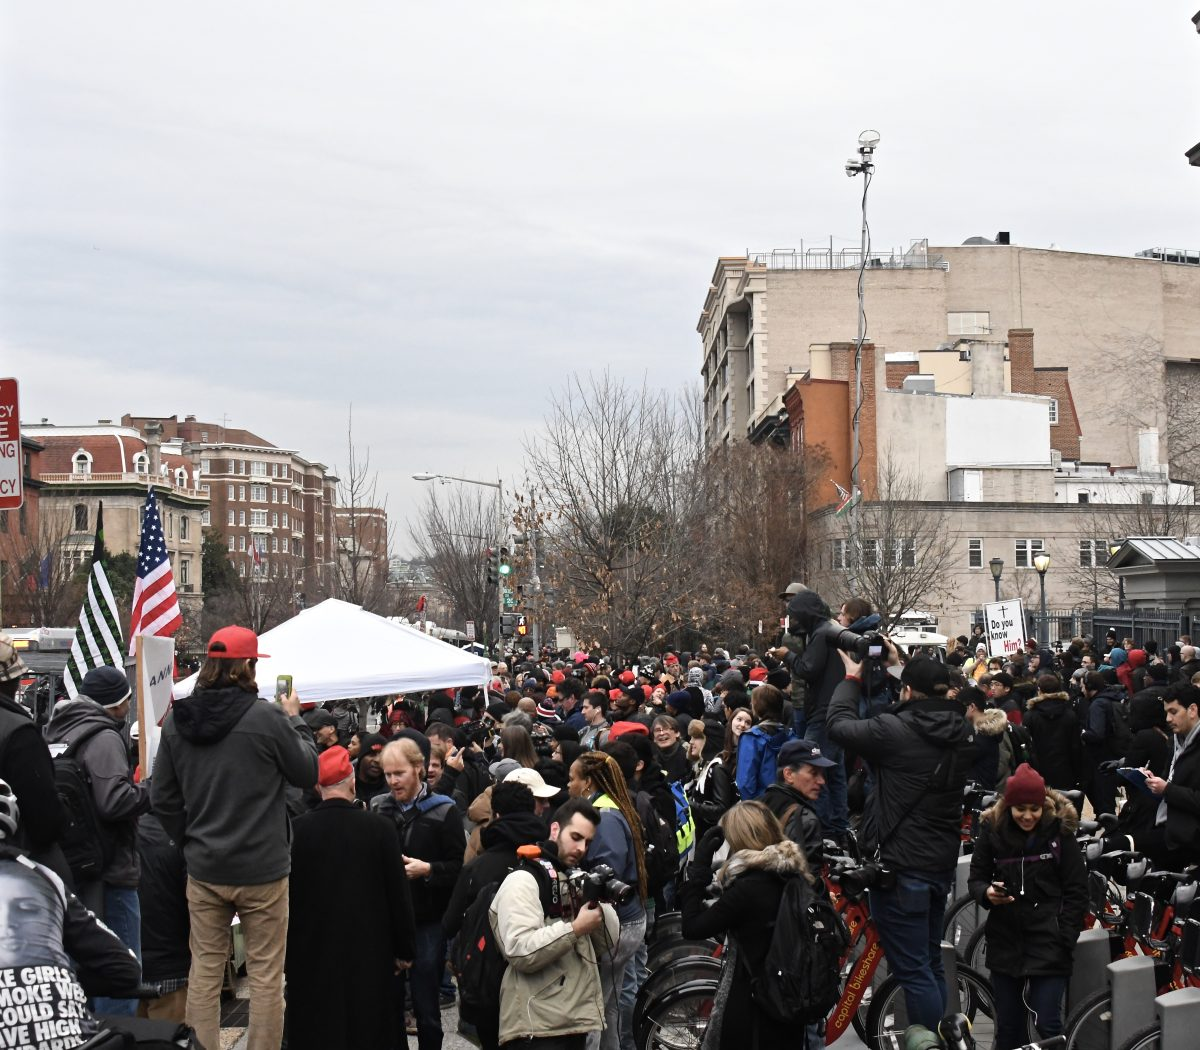 More than a thousand demonstrators rallied at 20th and Massachusetts Ave, NW in support of legalizing marijuana on the federal level and to protest President Trump's pick of attorney general Friday, Jan 20. Photo by Travis Riddick